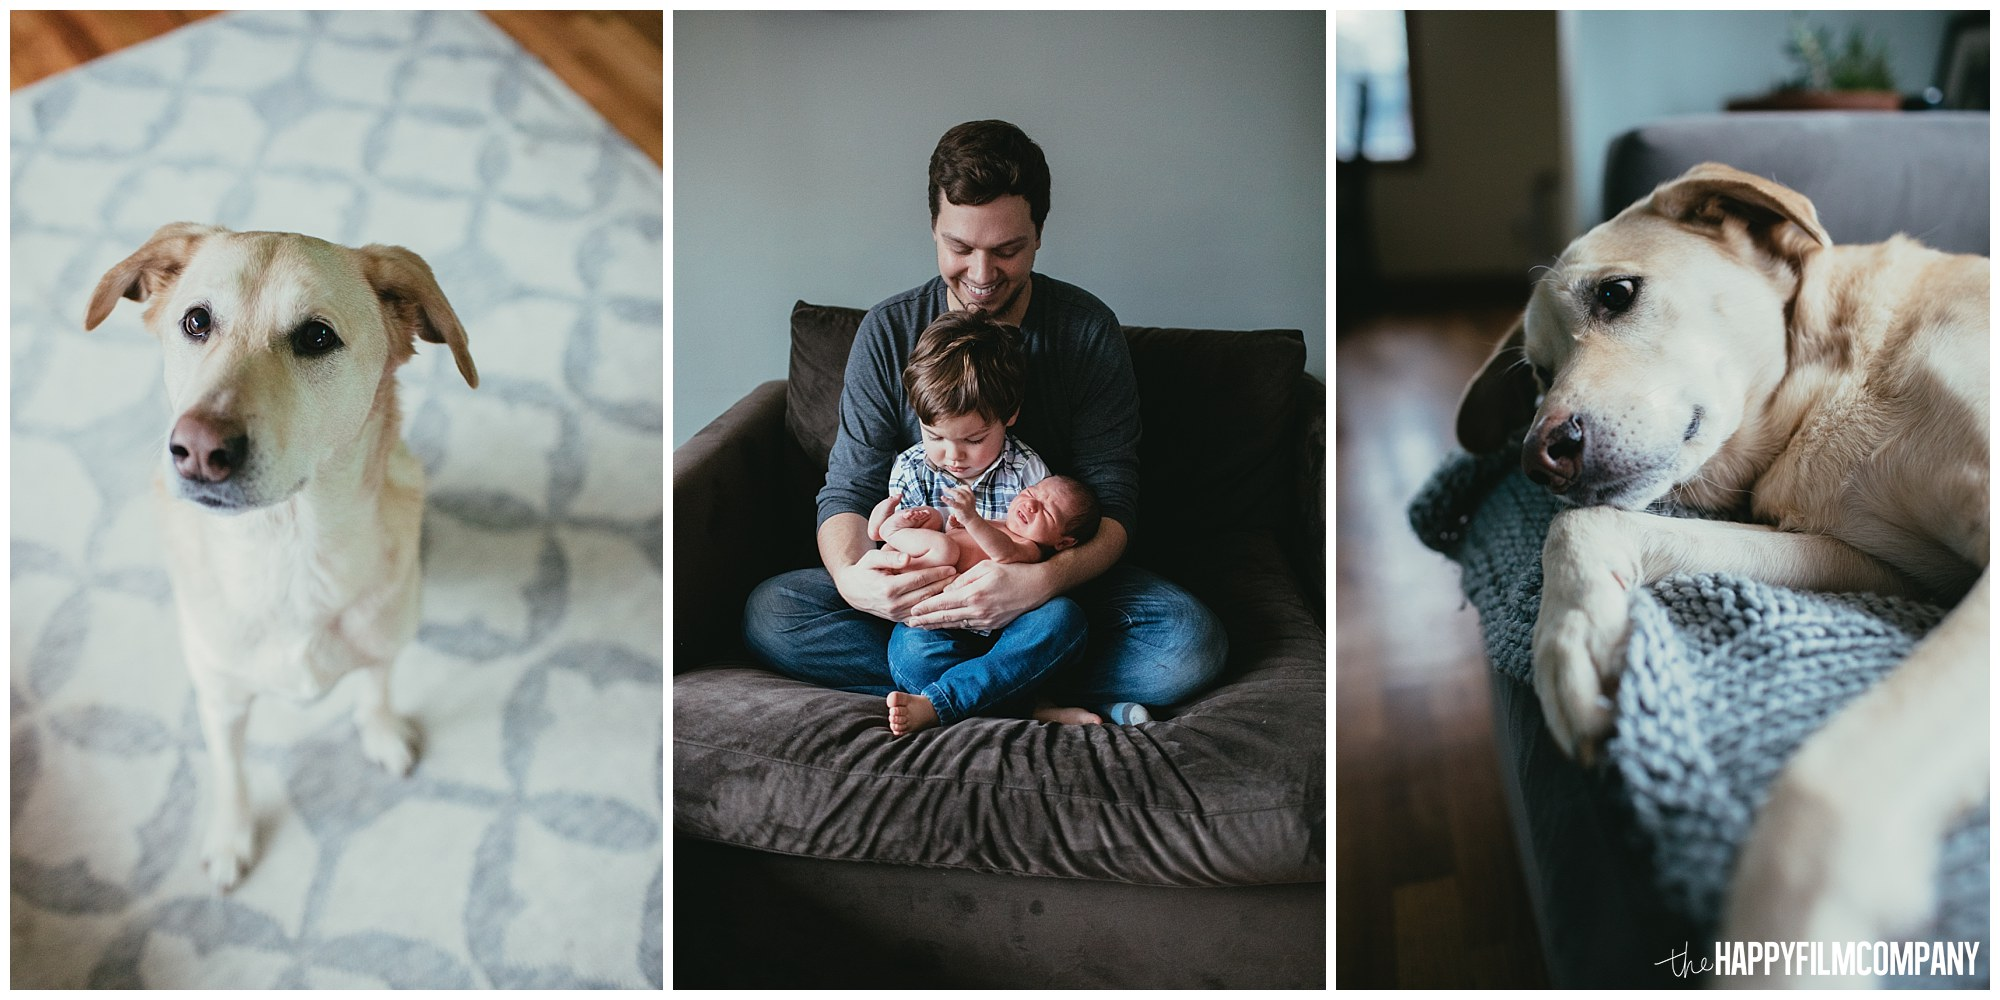 the Happy Film Company - Seattle Newborn Photographer - dog family photos father baby